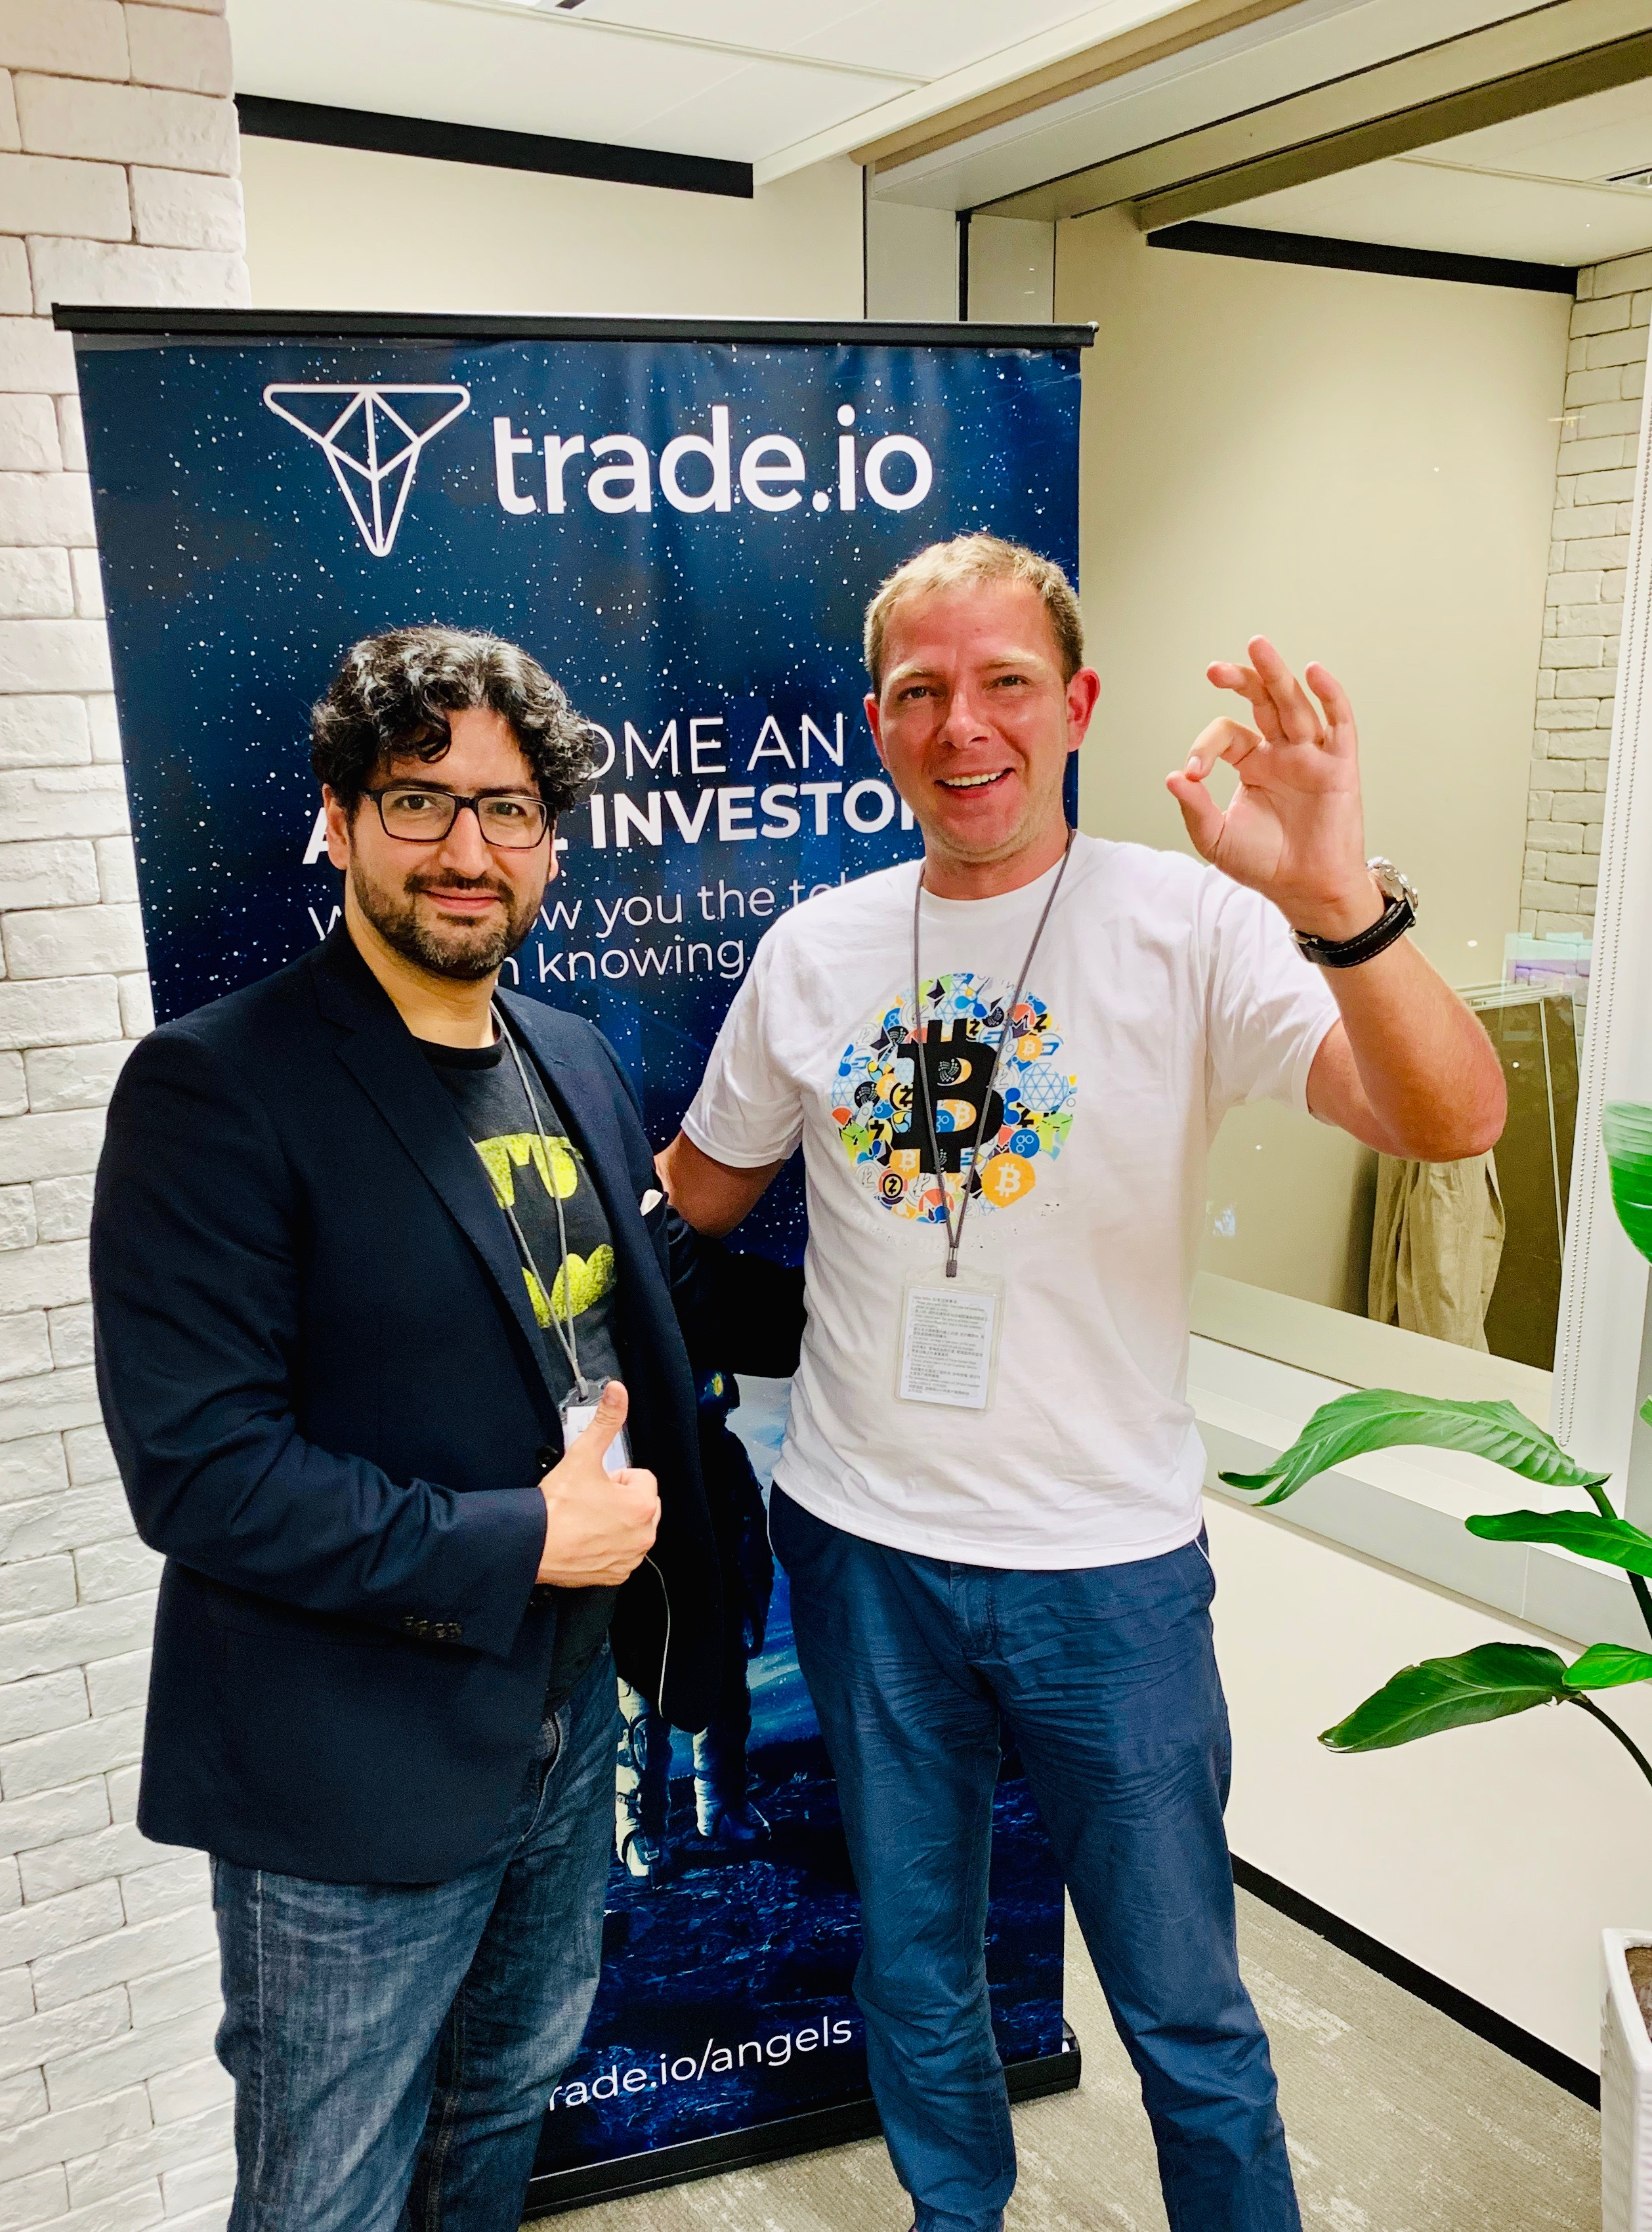 Dmitry Fedotov Pascal Lauria and Trade.io team